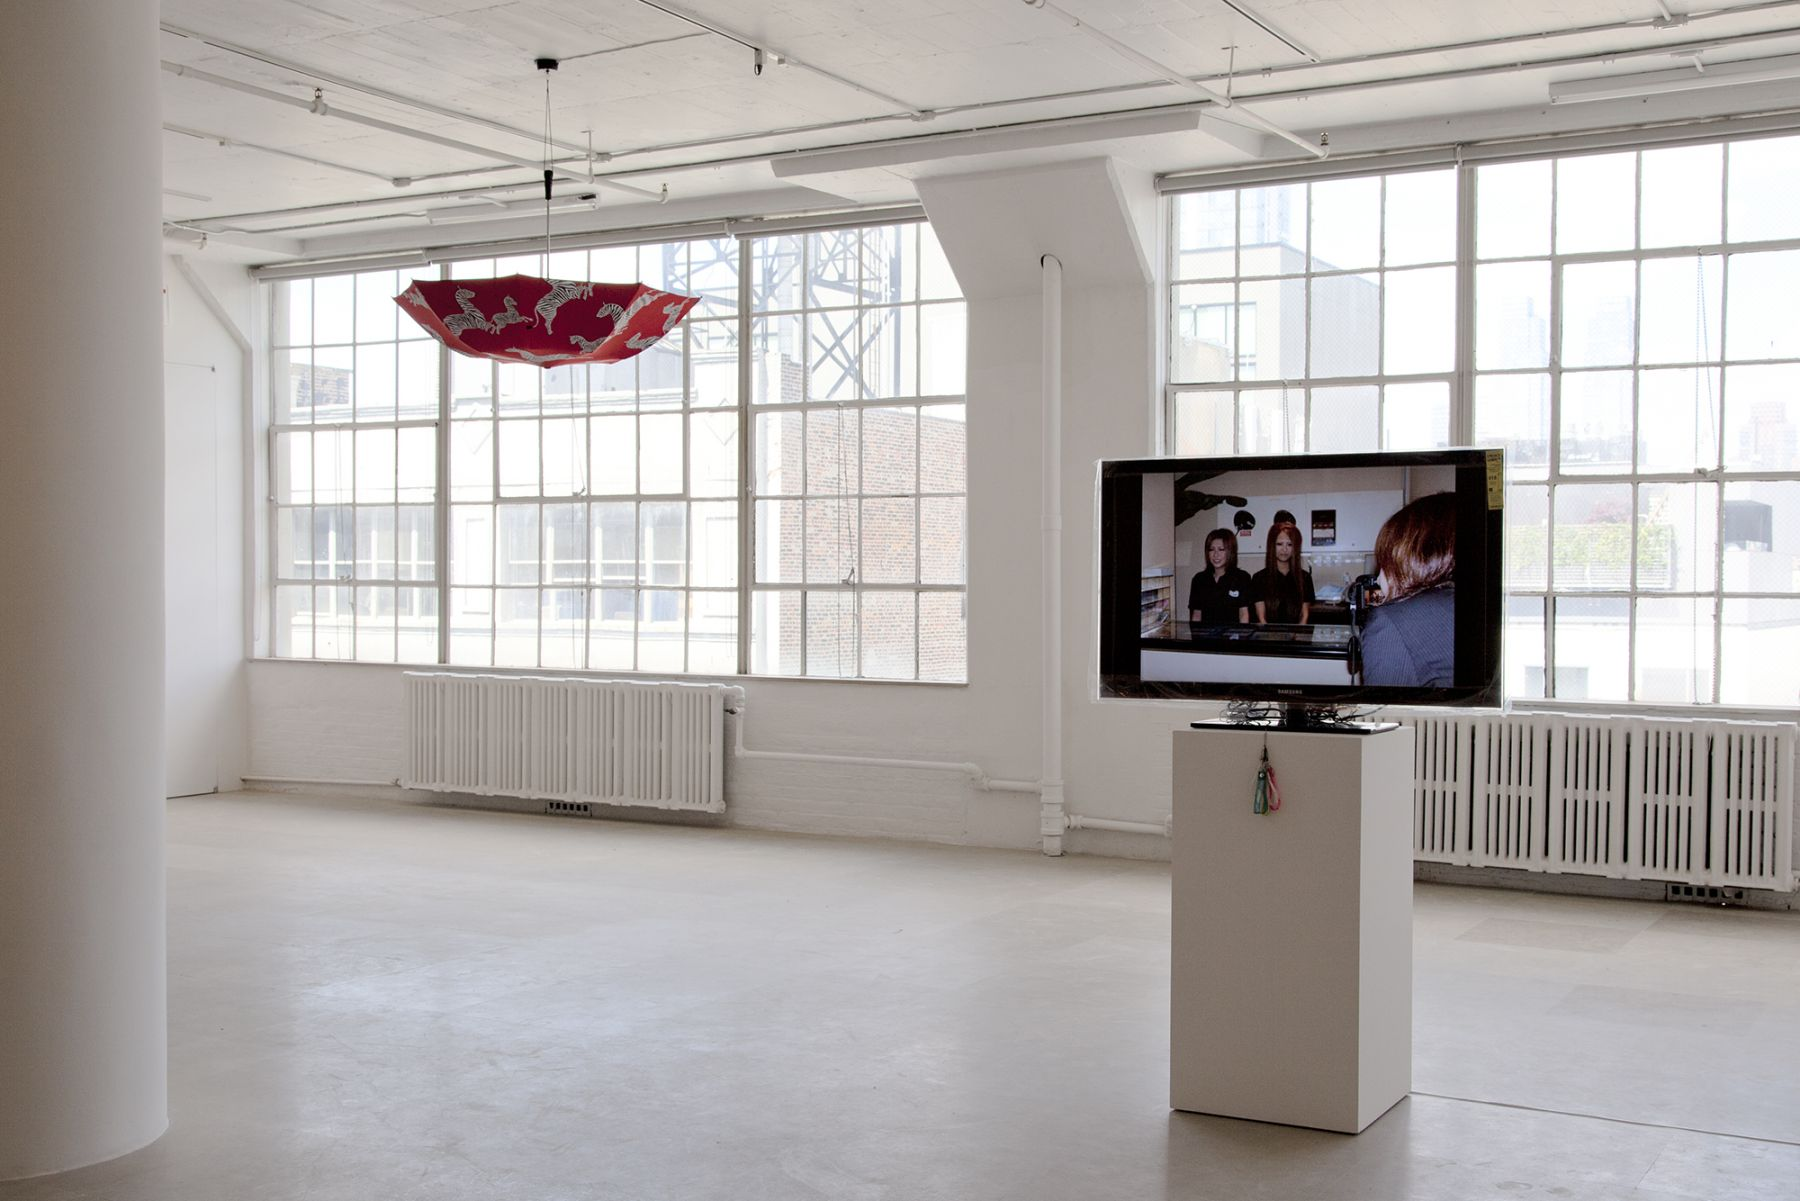 Ei Arakawa / United Brothers (w/ Das Institut), BLACKY Blocked Radiants Sunbathed, 2011, Digital projection of 185 slides with a set of mobile straps, Dimensions variable, Ed. 1/3, 2 APs, Installation view, Greene Naftali, New York, 2011